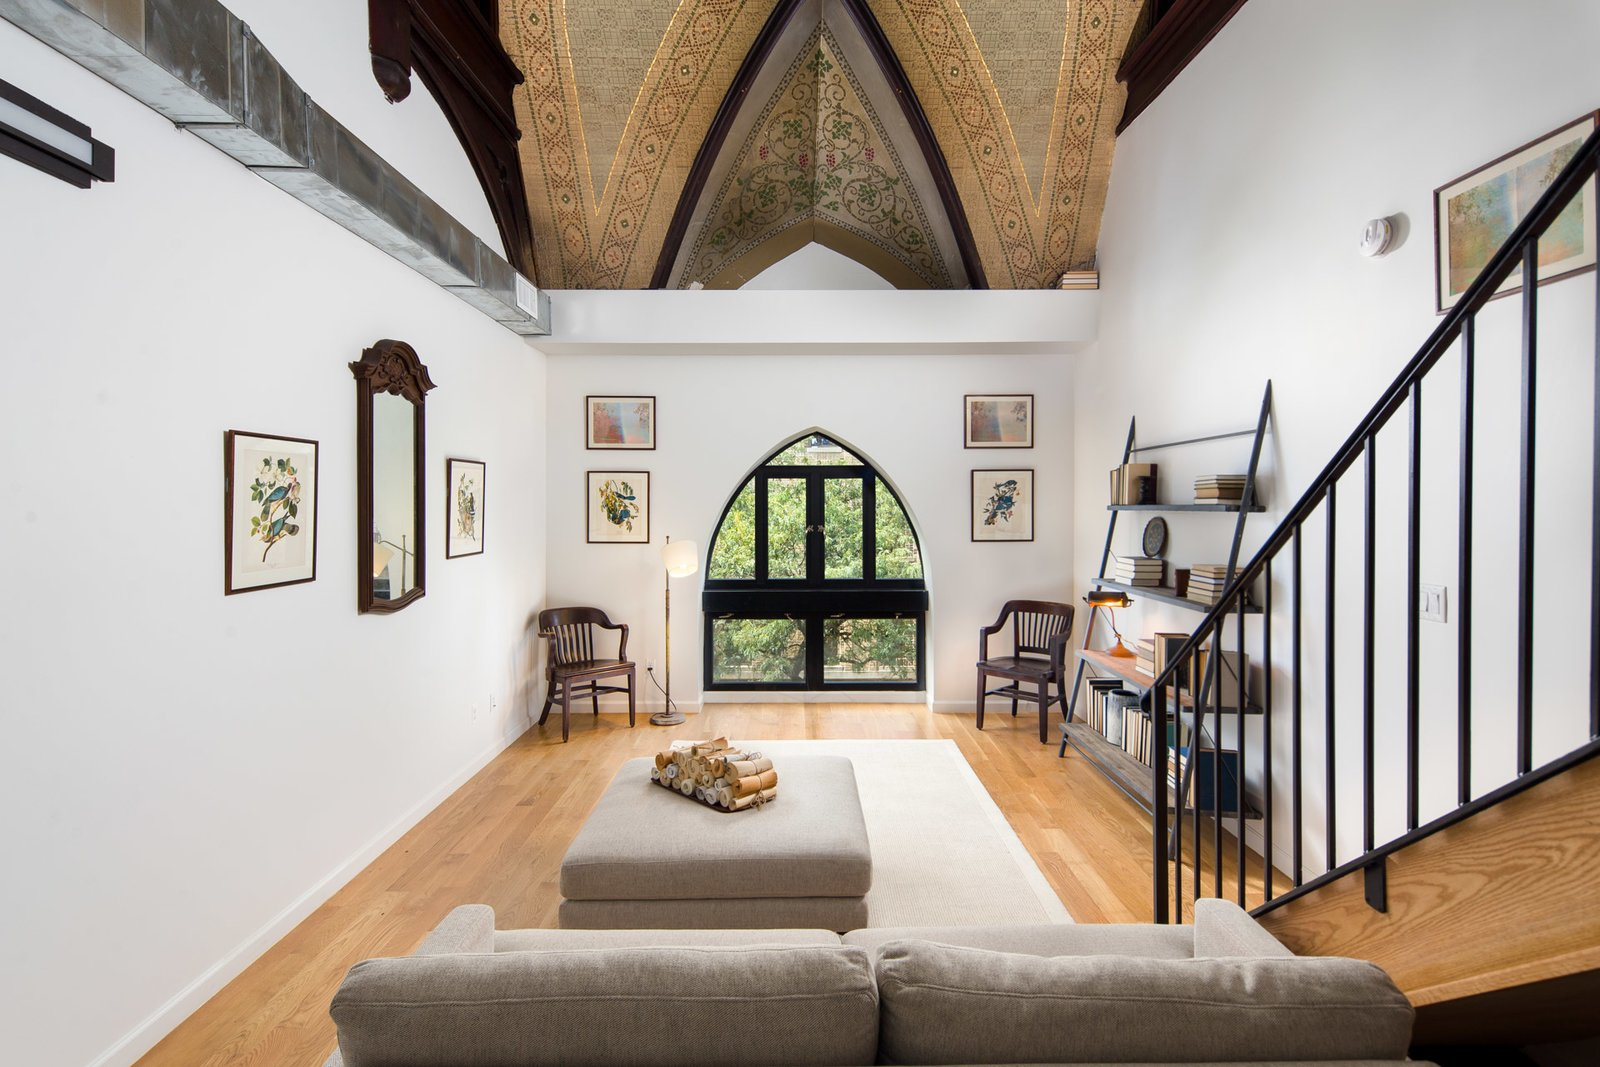 Rent One of These Stunning Lofts in a Converted Brooklyn Church - Dwell